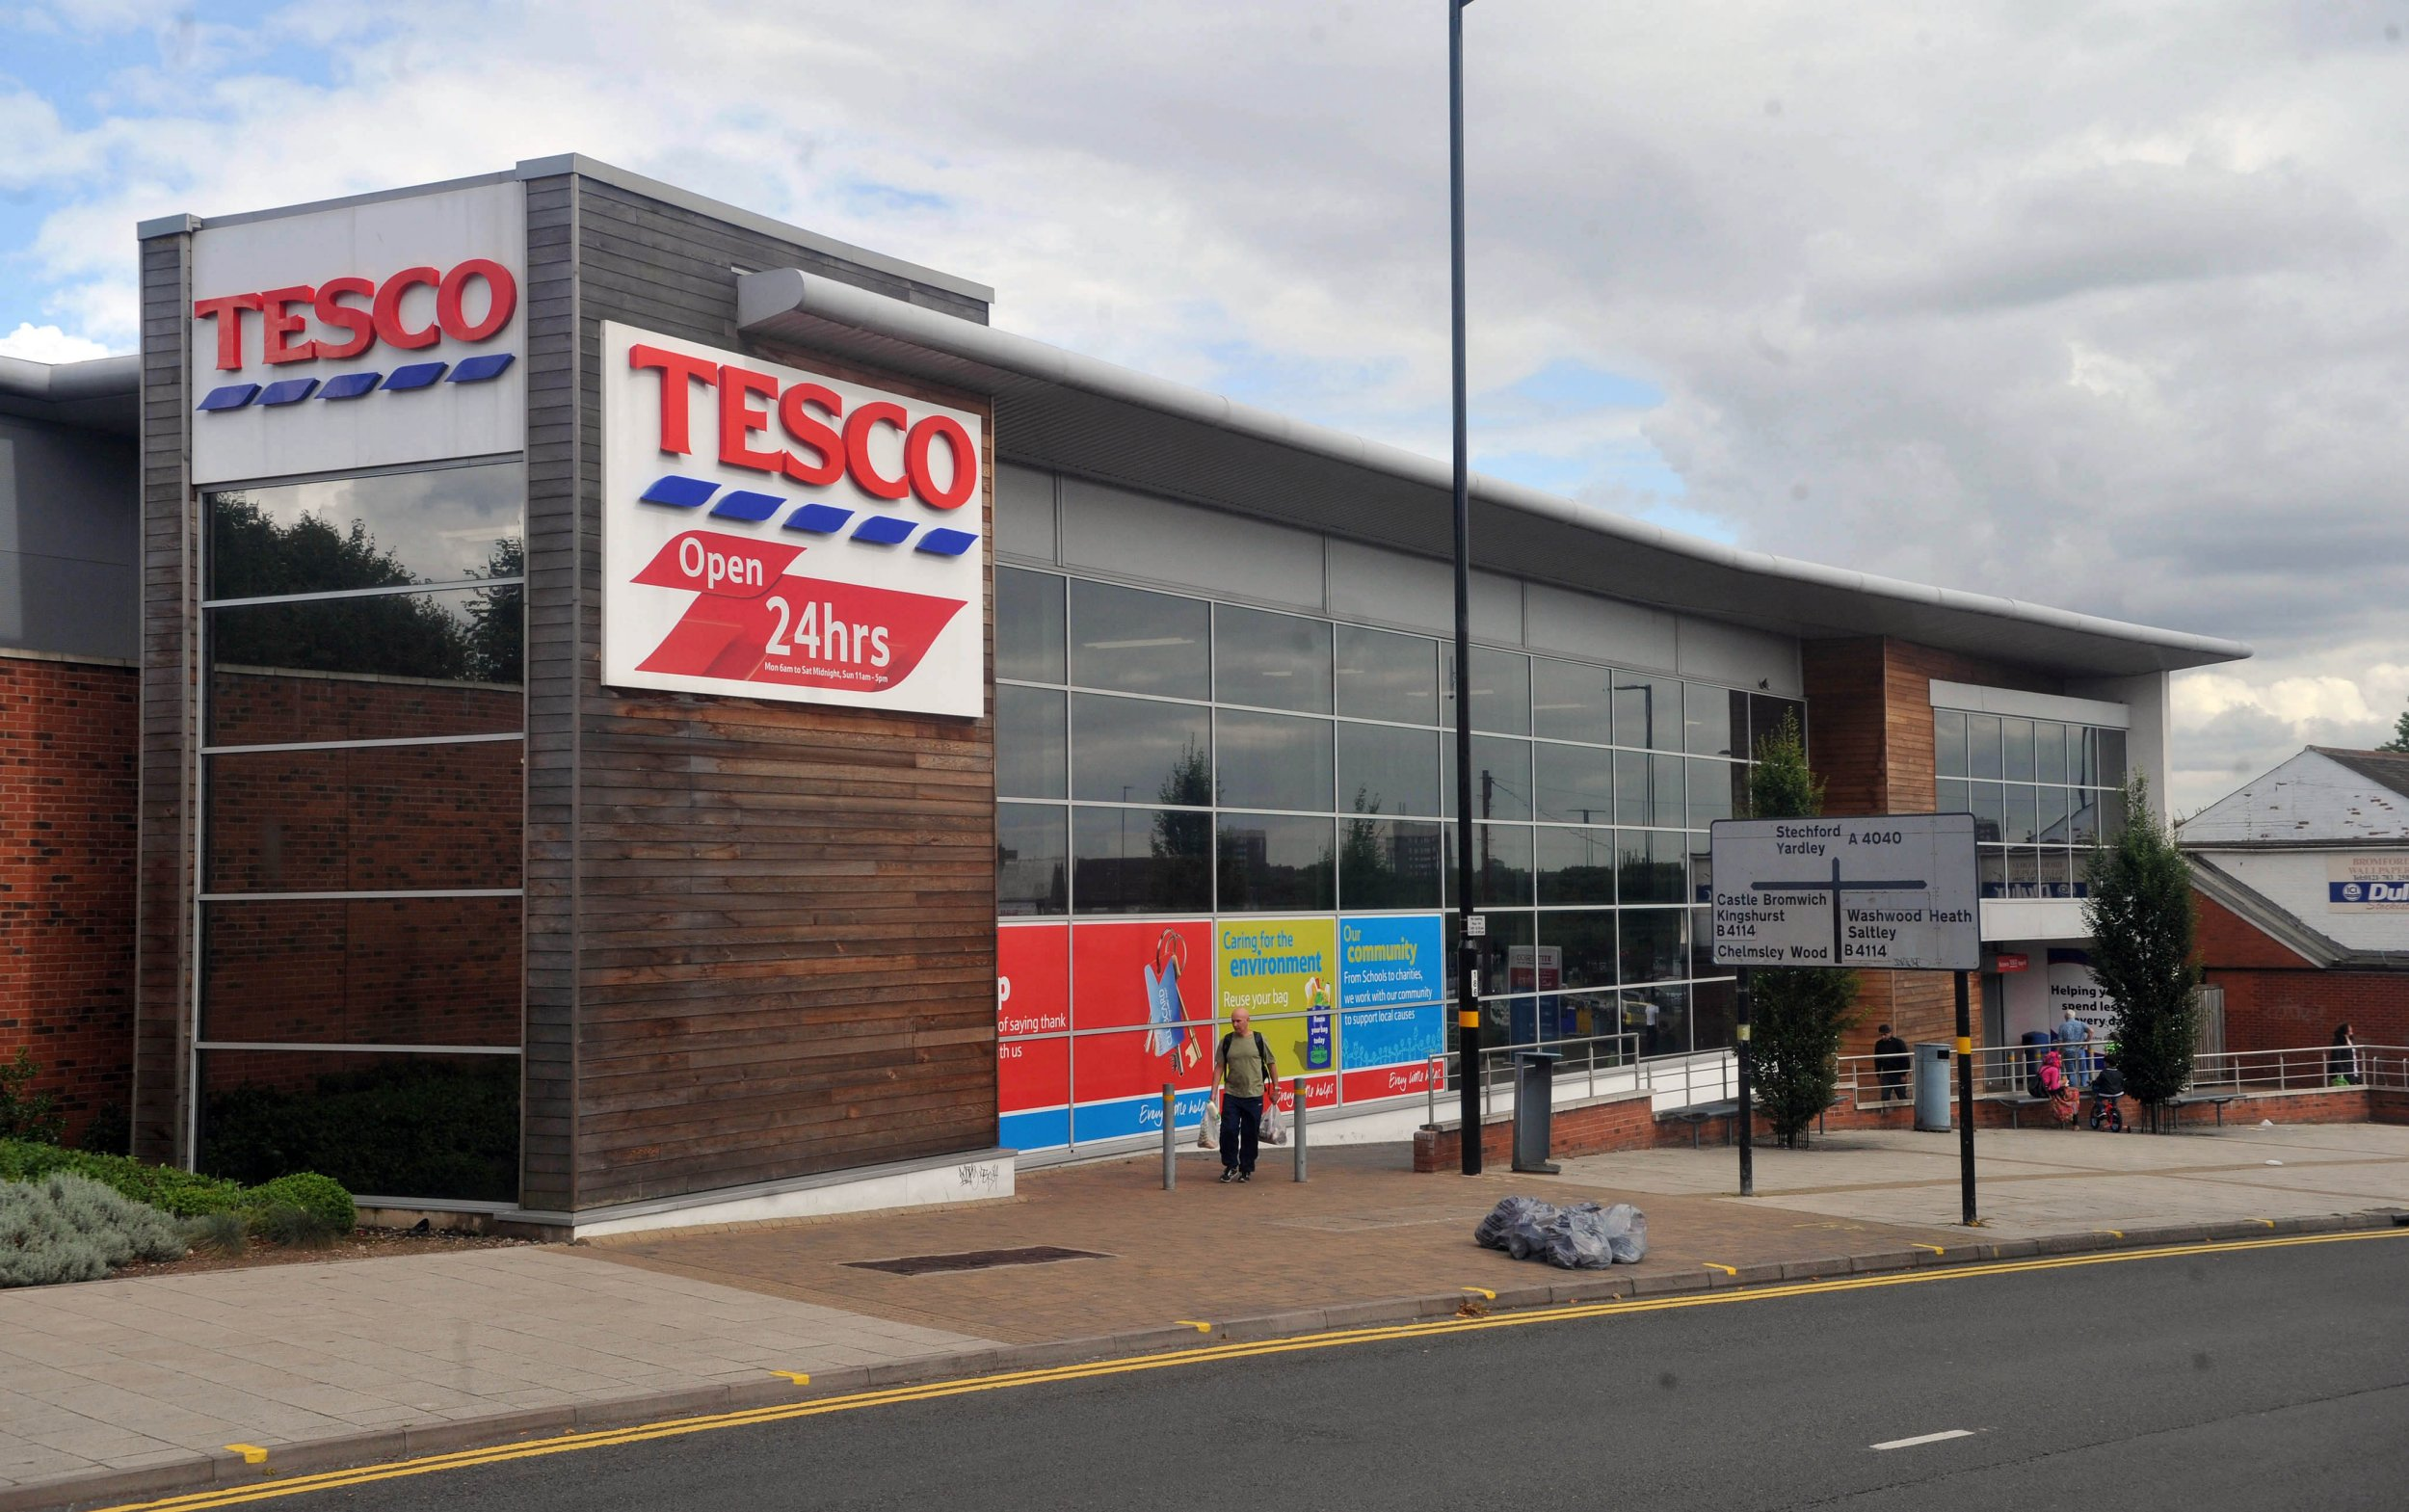 Man dies in Tesco toilets